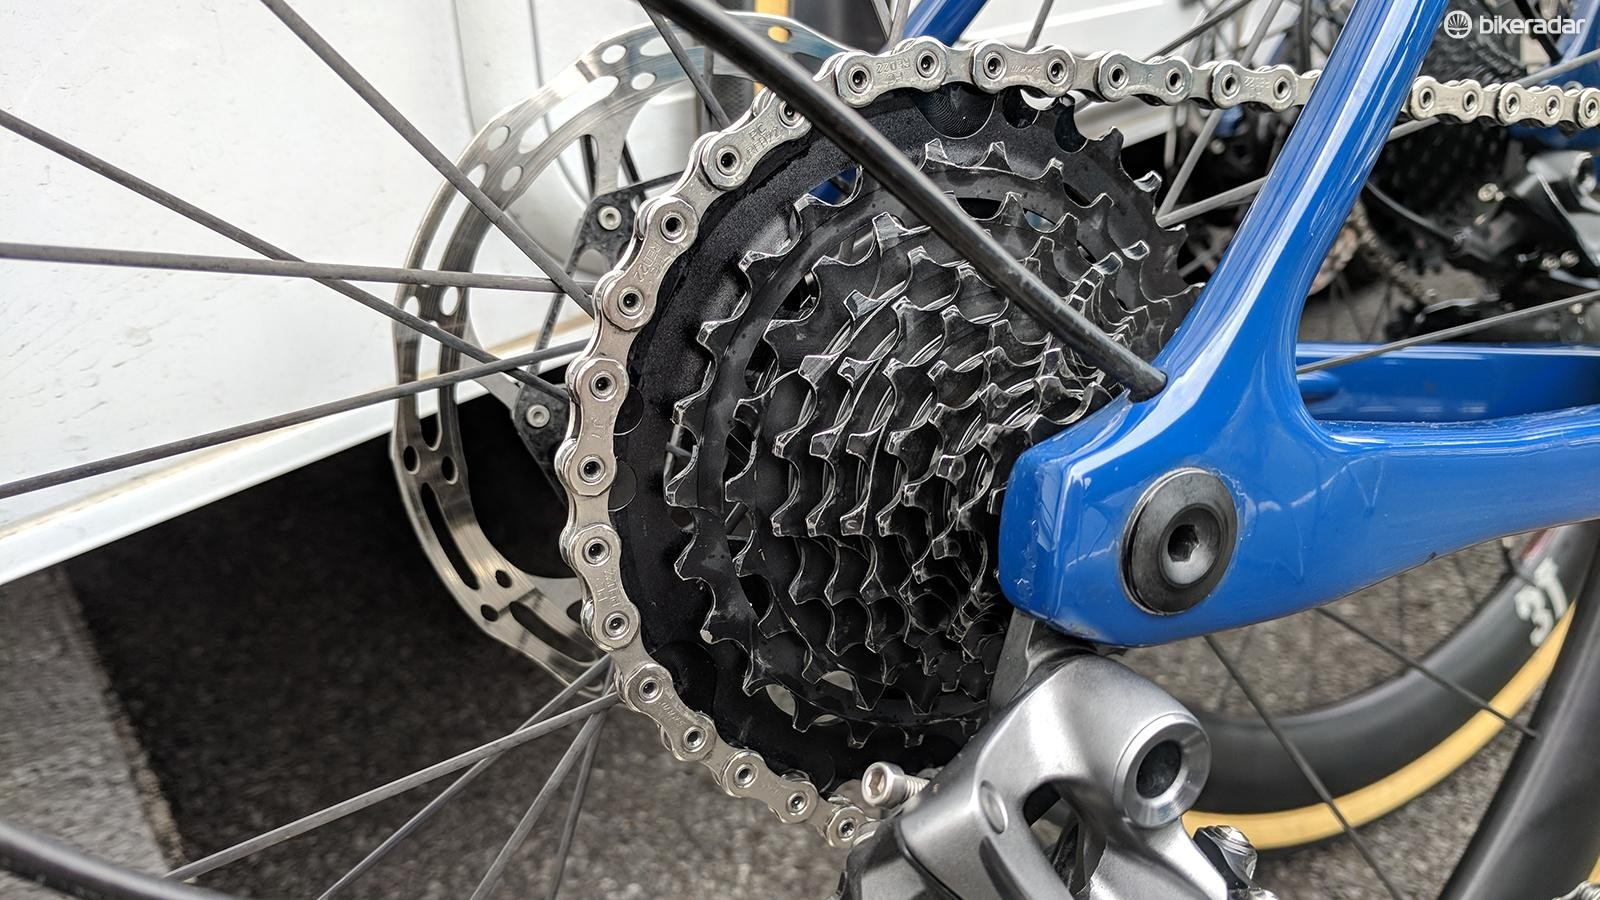 3T produces cassettes with closer gear ratios at one end of the cassette for racing or climbing, here is the former